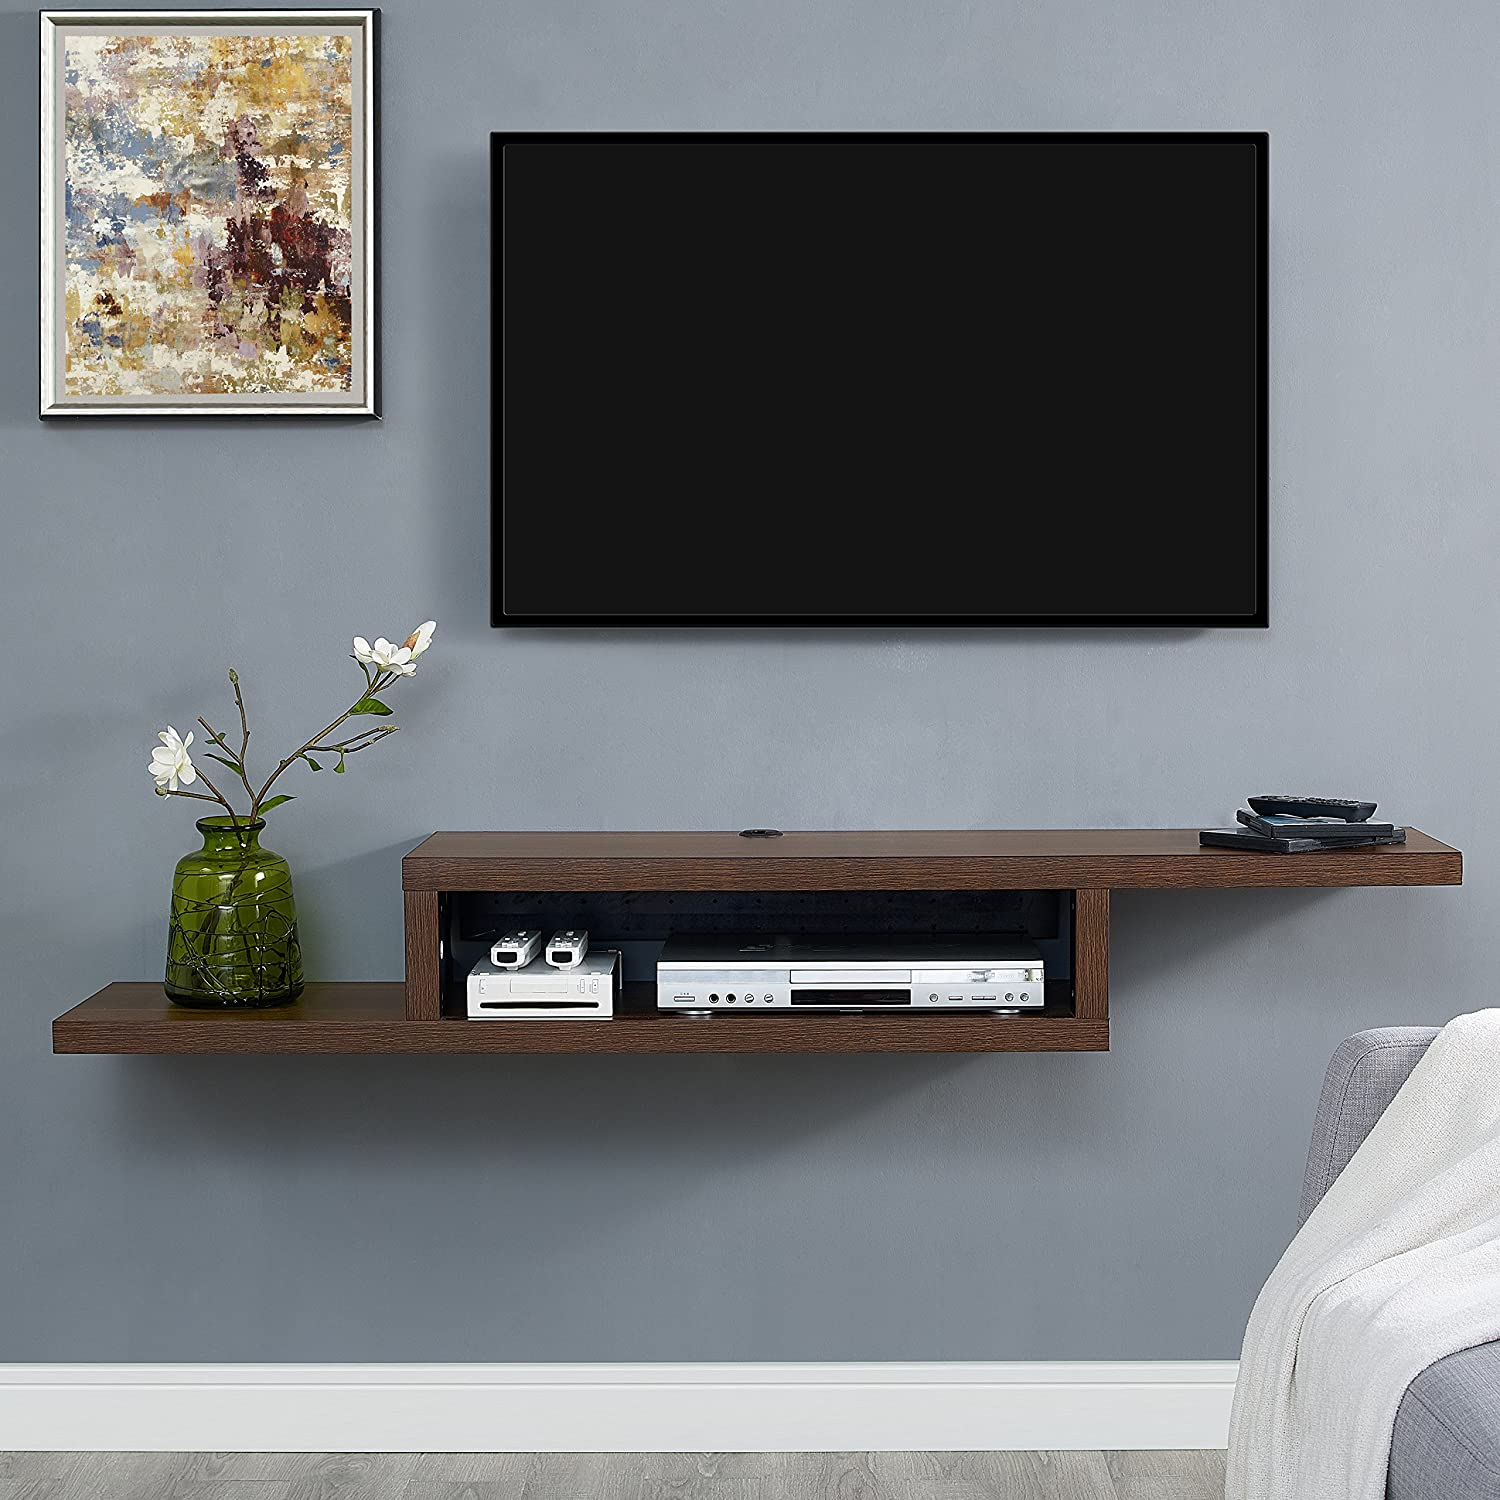 Martin FurnitureAsymmetrical Floating Wall Mounted TV Console, 60inch, Columbian Walnut